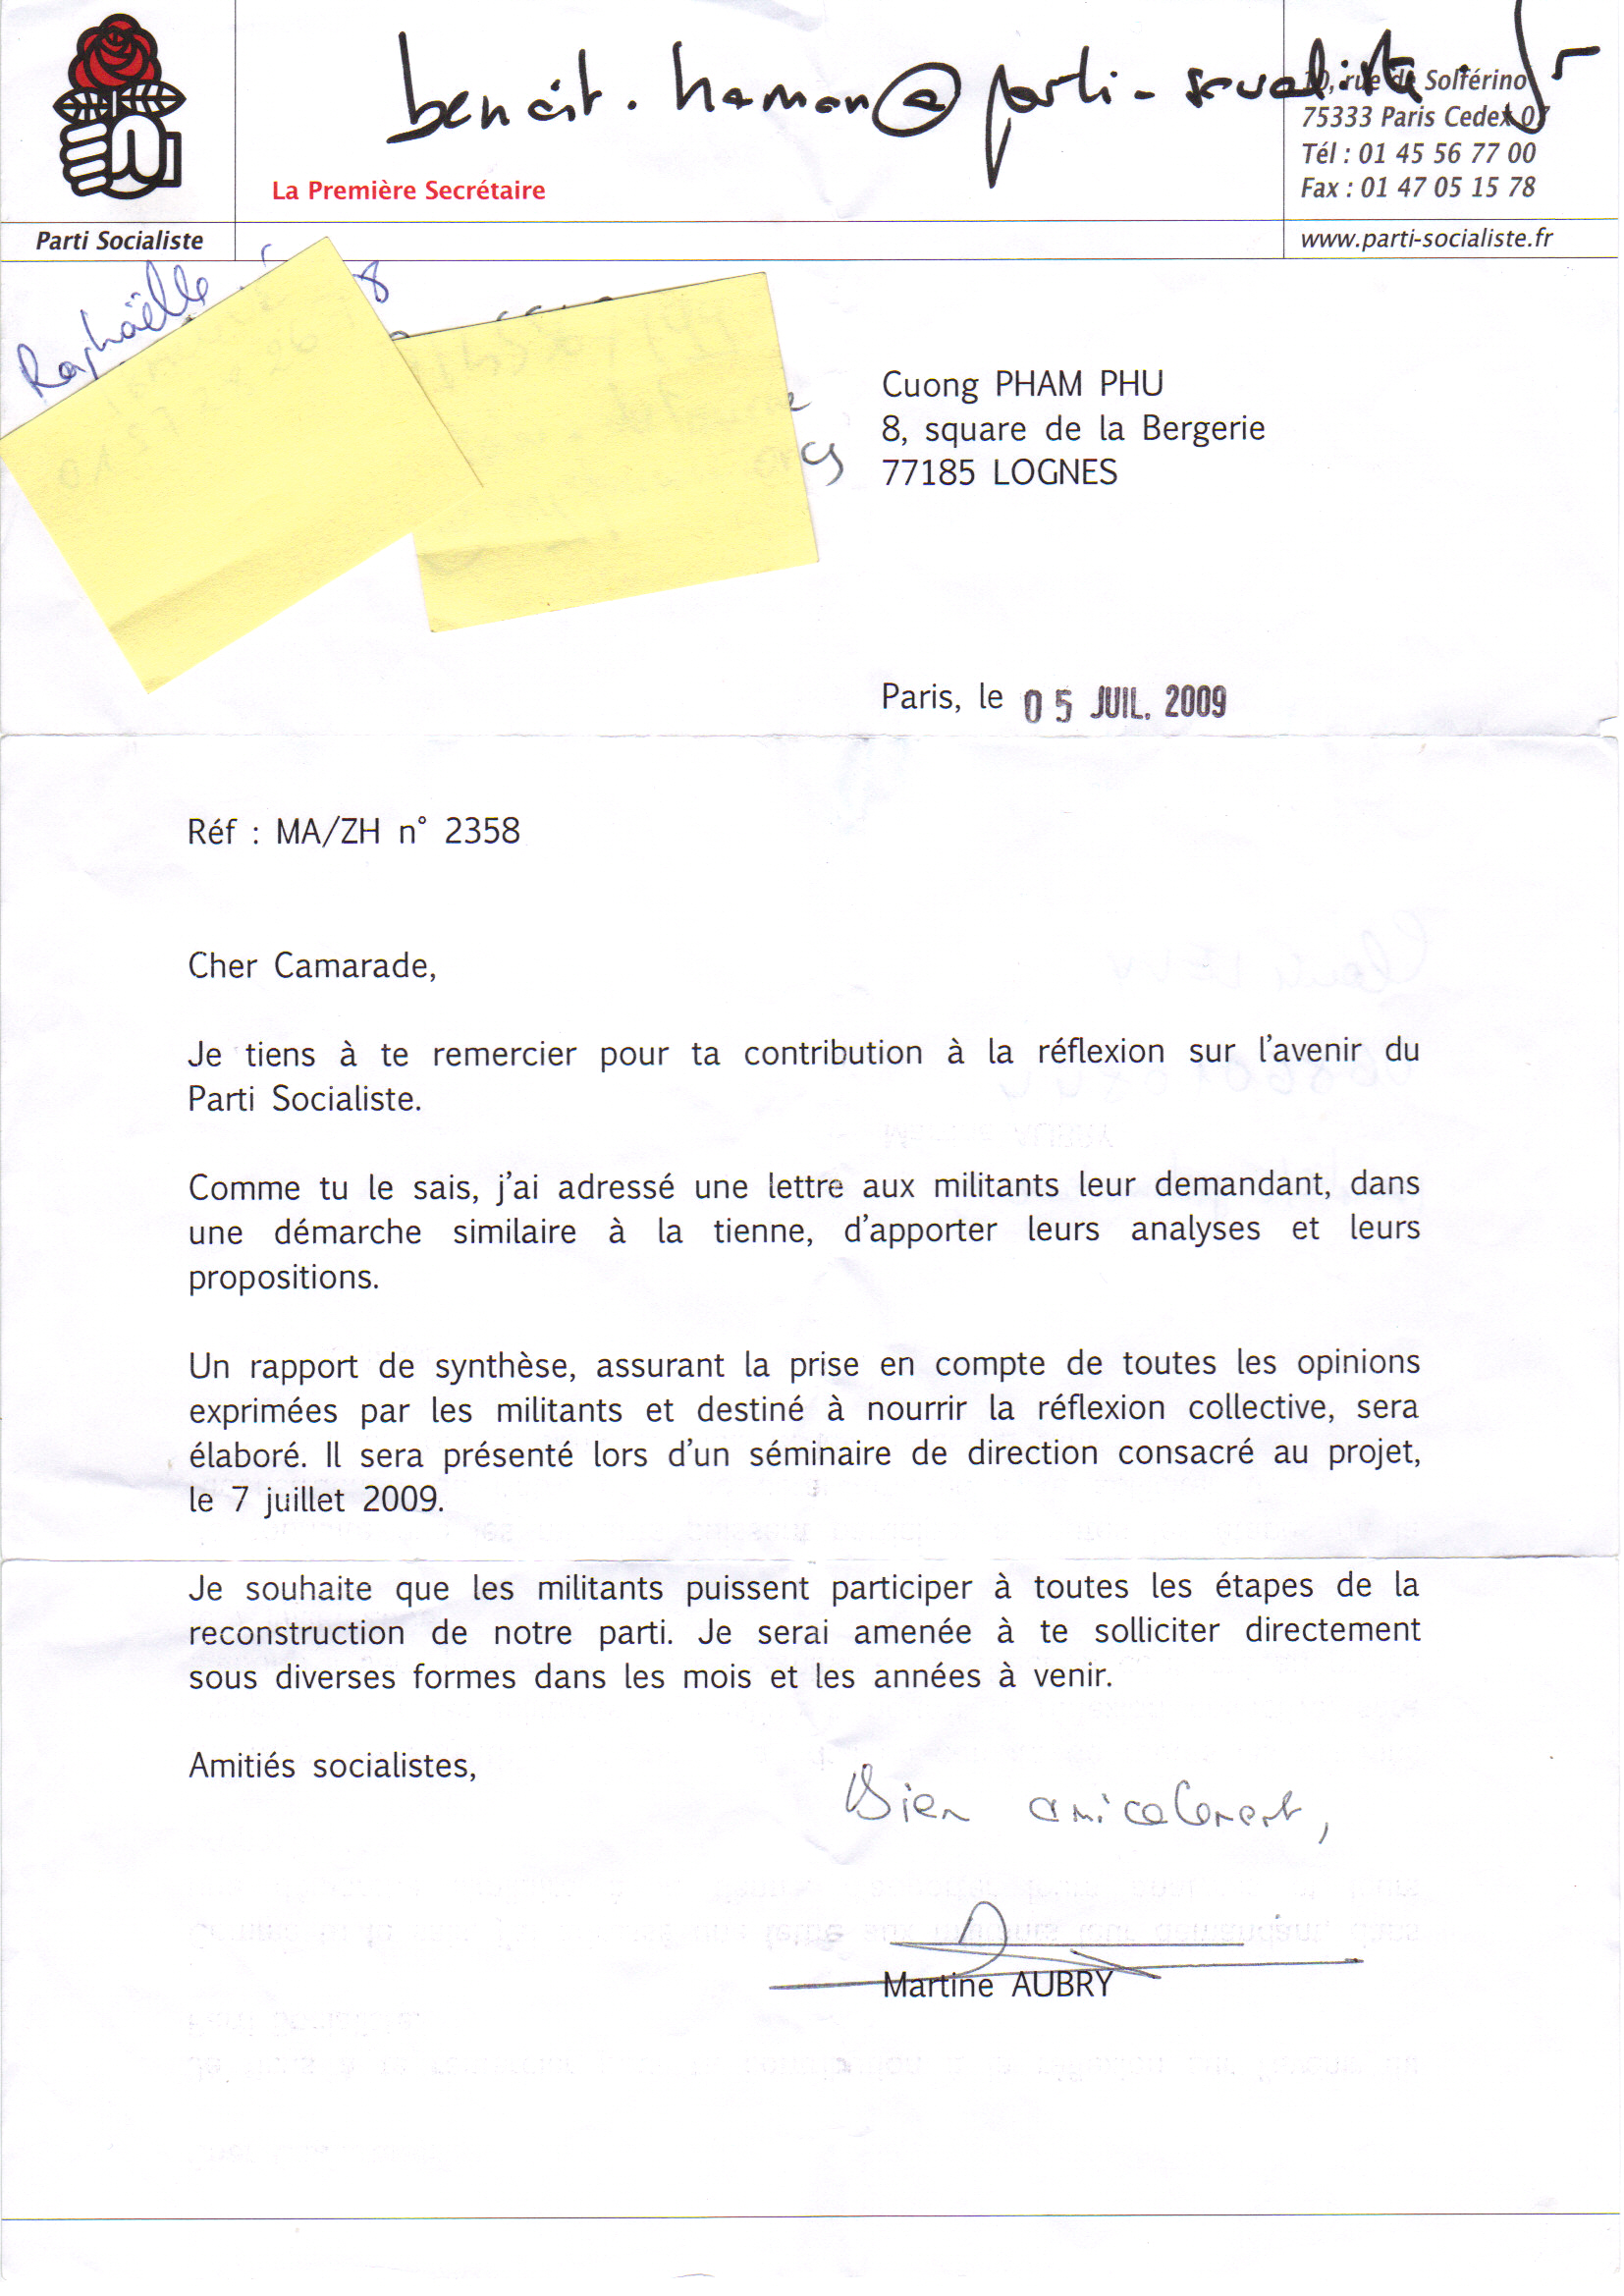 25-08-2011-lettre-de-martine-aubry.JPG